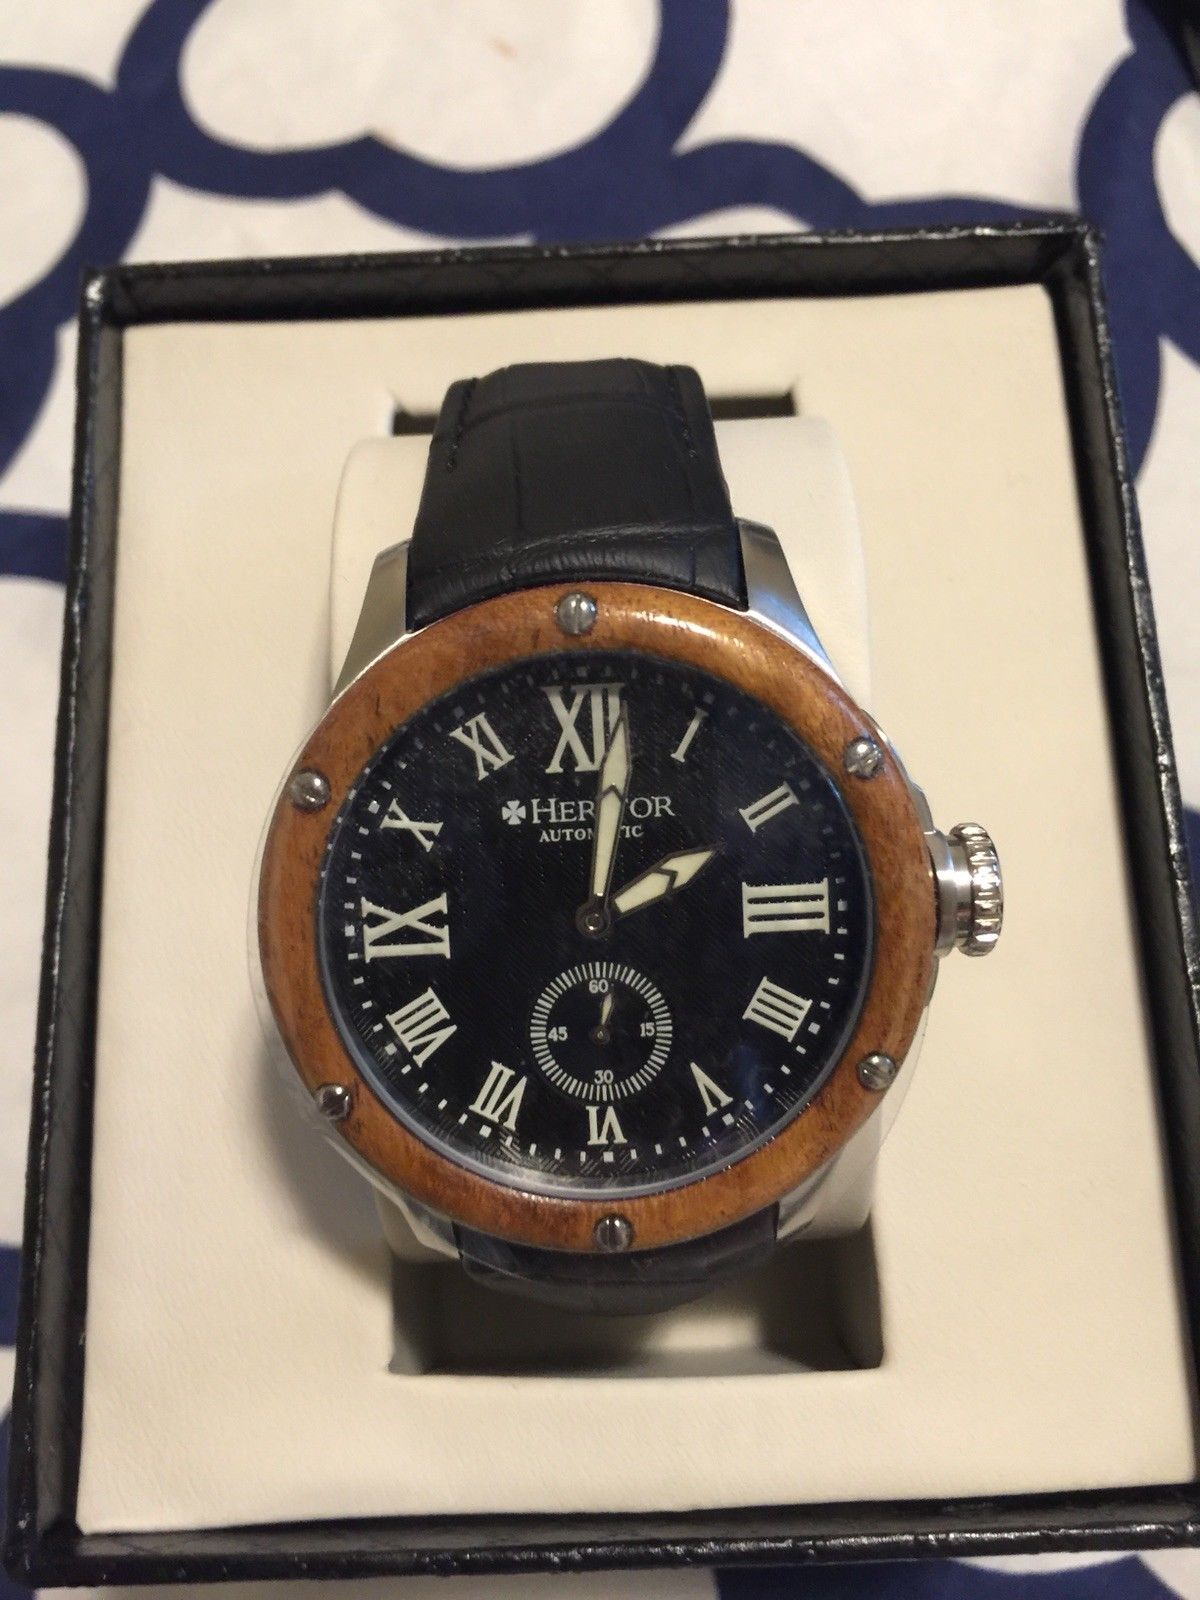 cfe95bc8a Heritor Automatic Montrichard HR4501 Mens Watch   King of sales ...